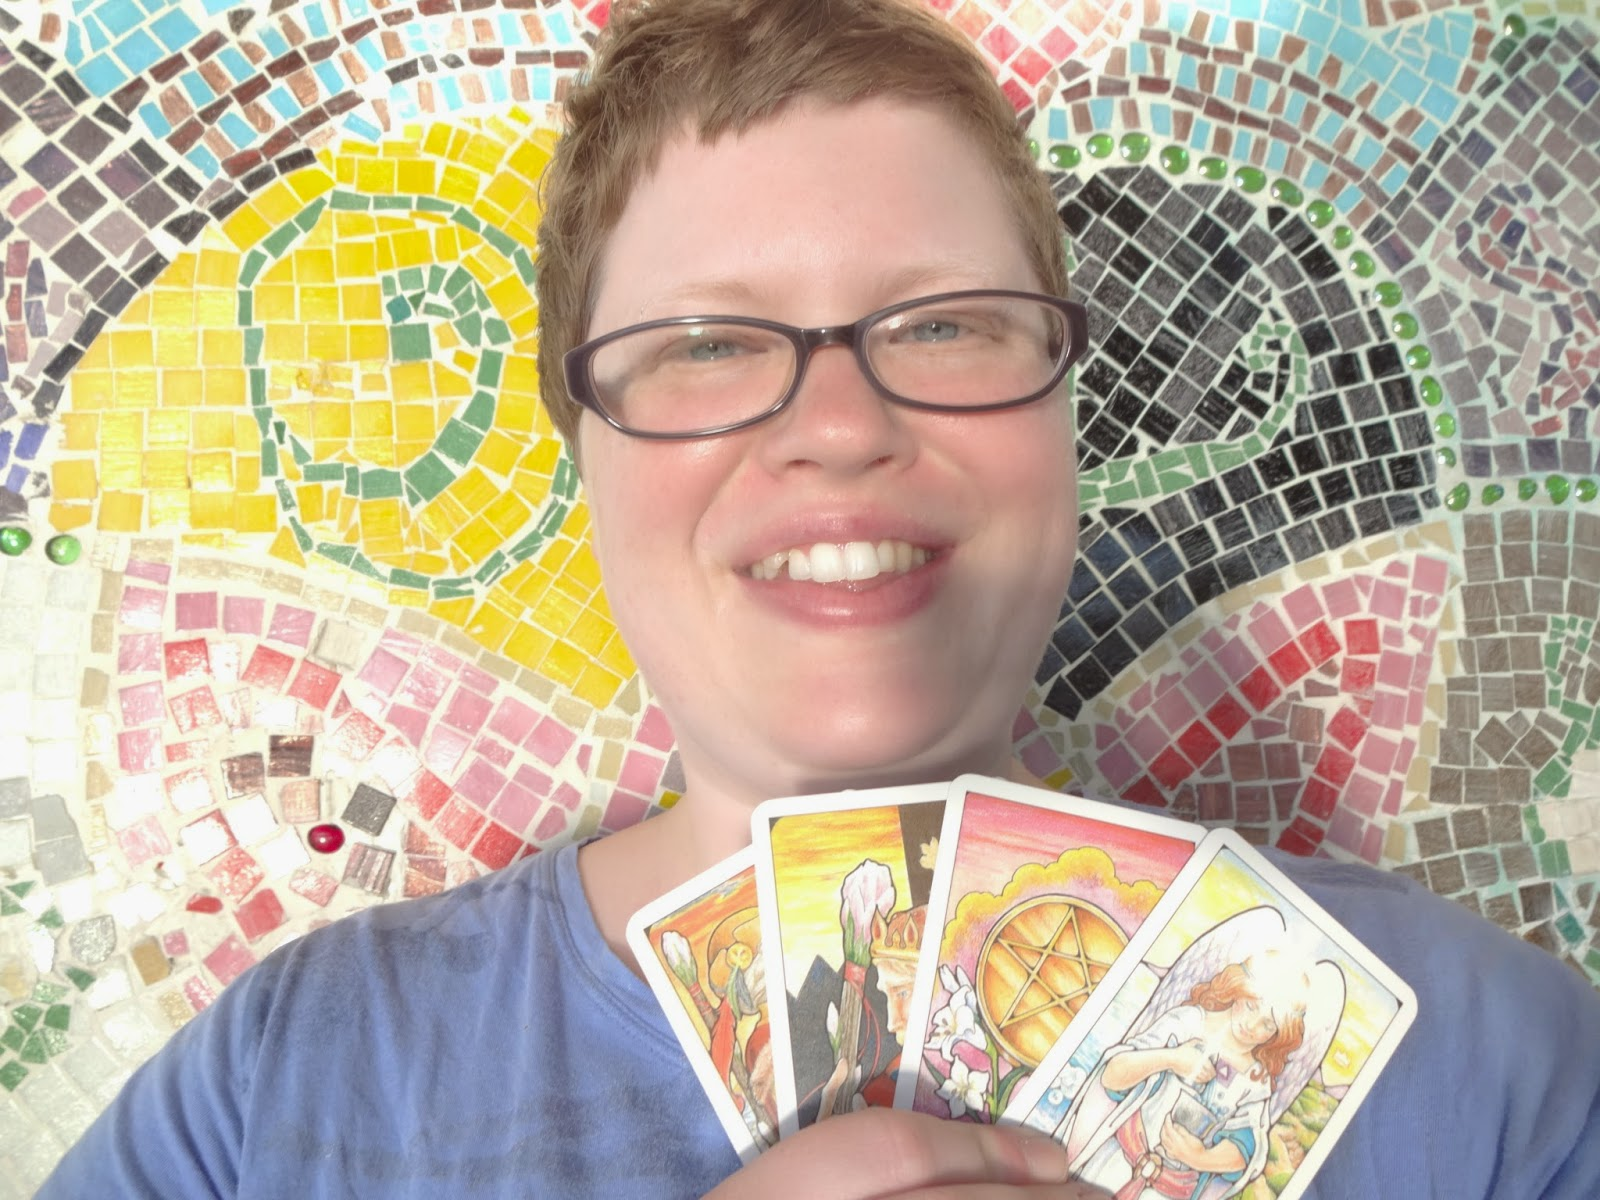 Profile picture with my cards